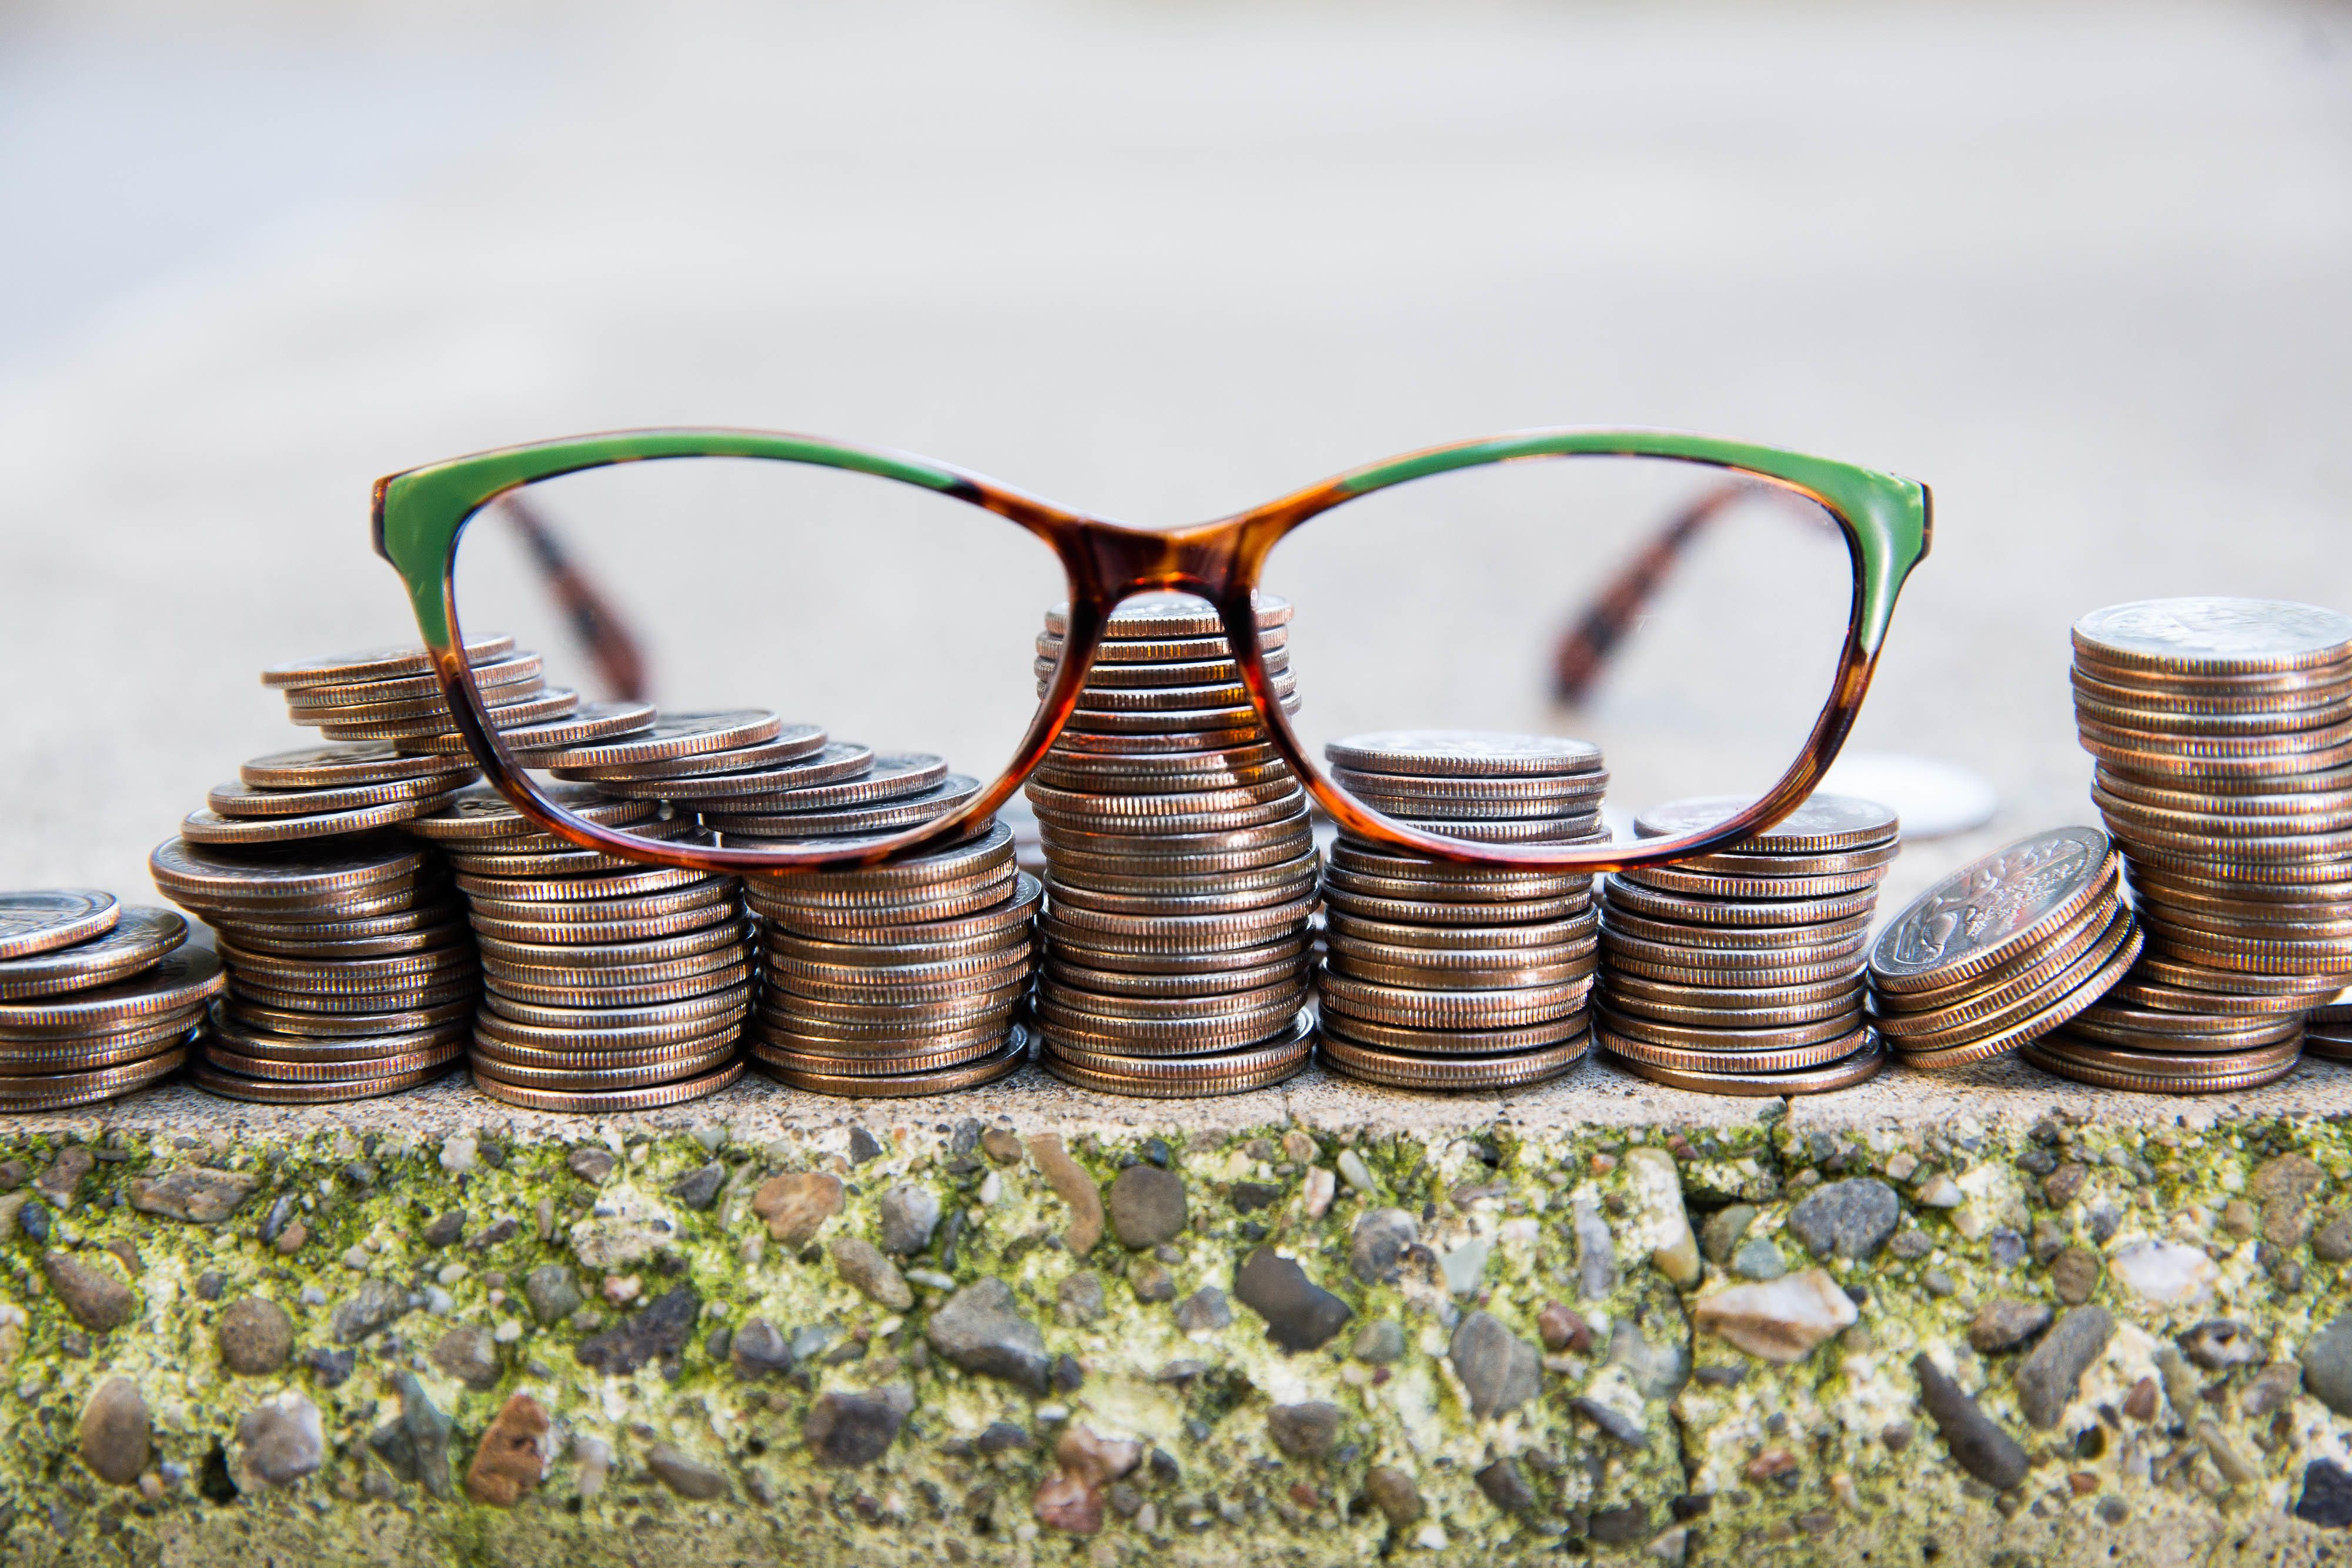 Stacks of coins, with eyeglasses